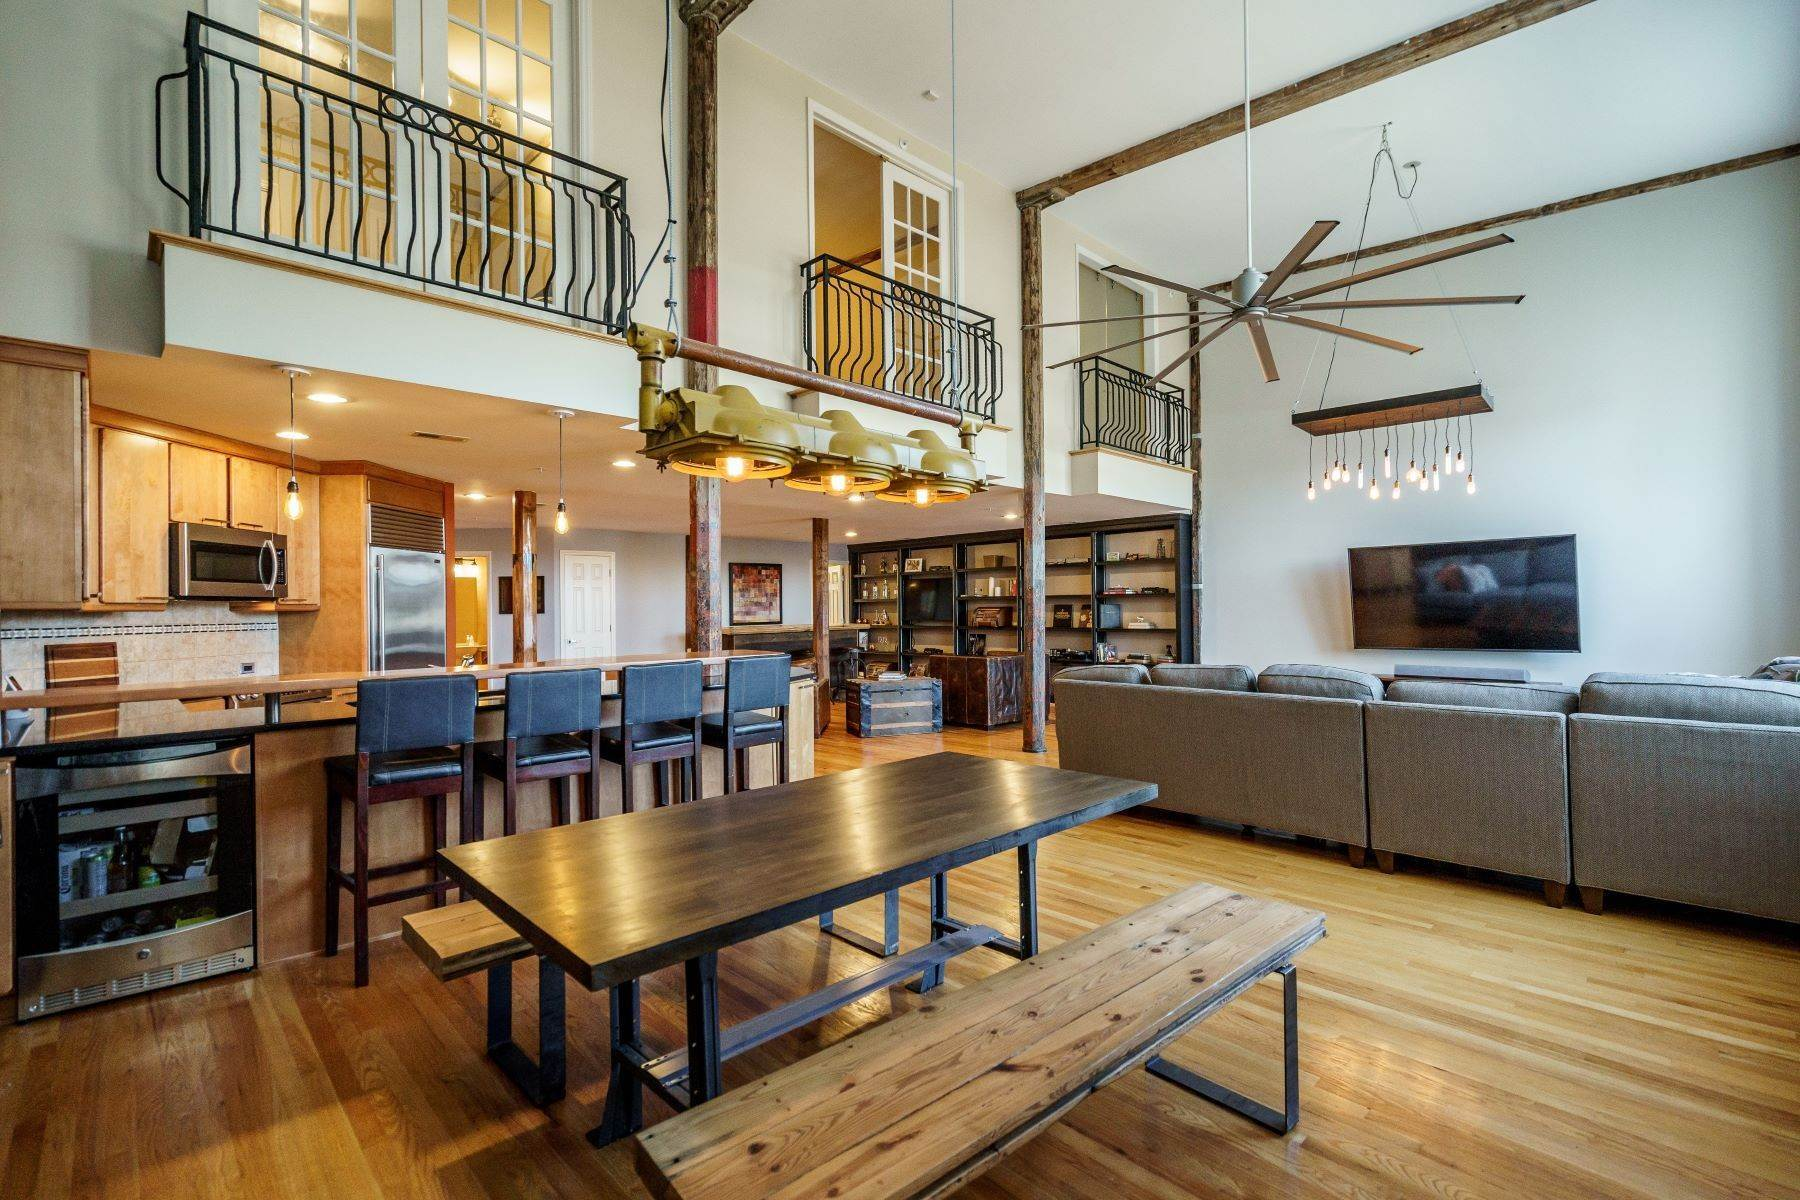 Single Family Homes for Sale at Large Industrial Loft in The Cotton Mill 614 Capital Boulevard Unit 225 Raleigh, North Carolina 27603 United States